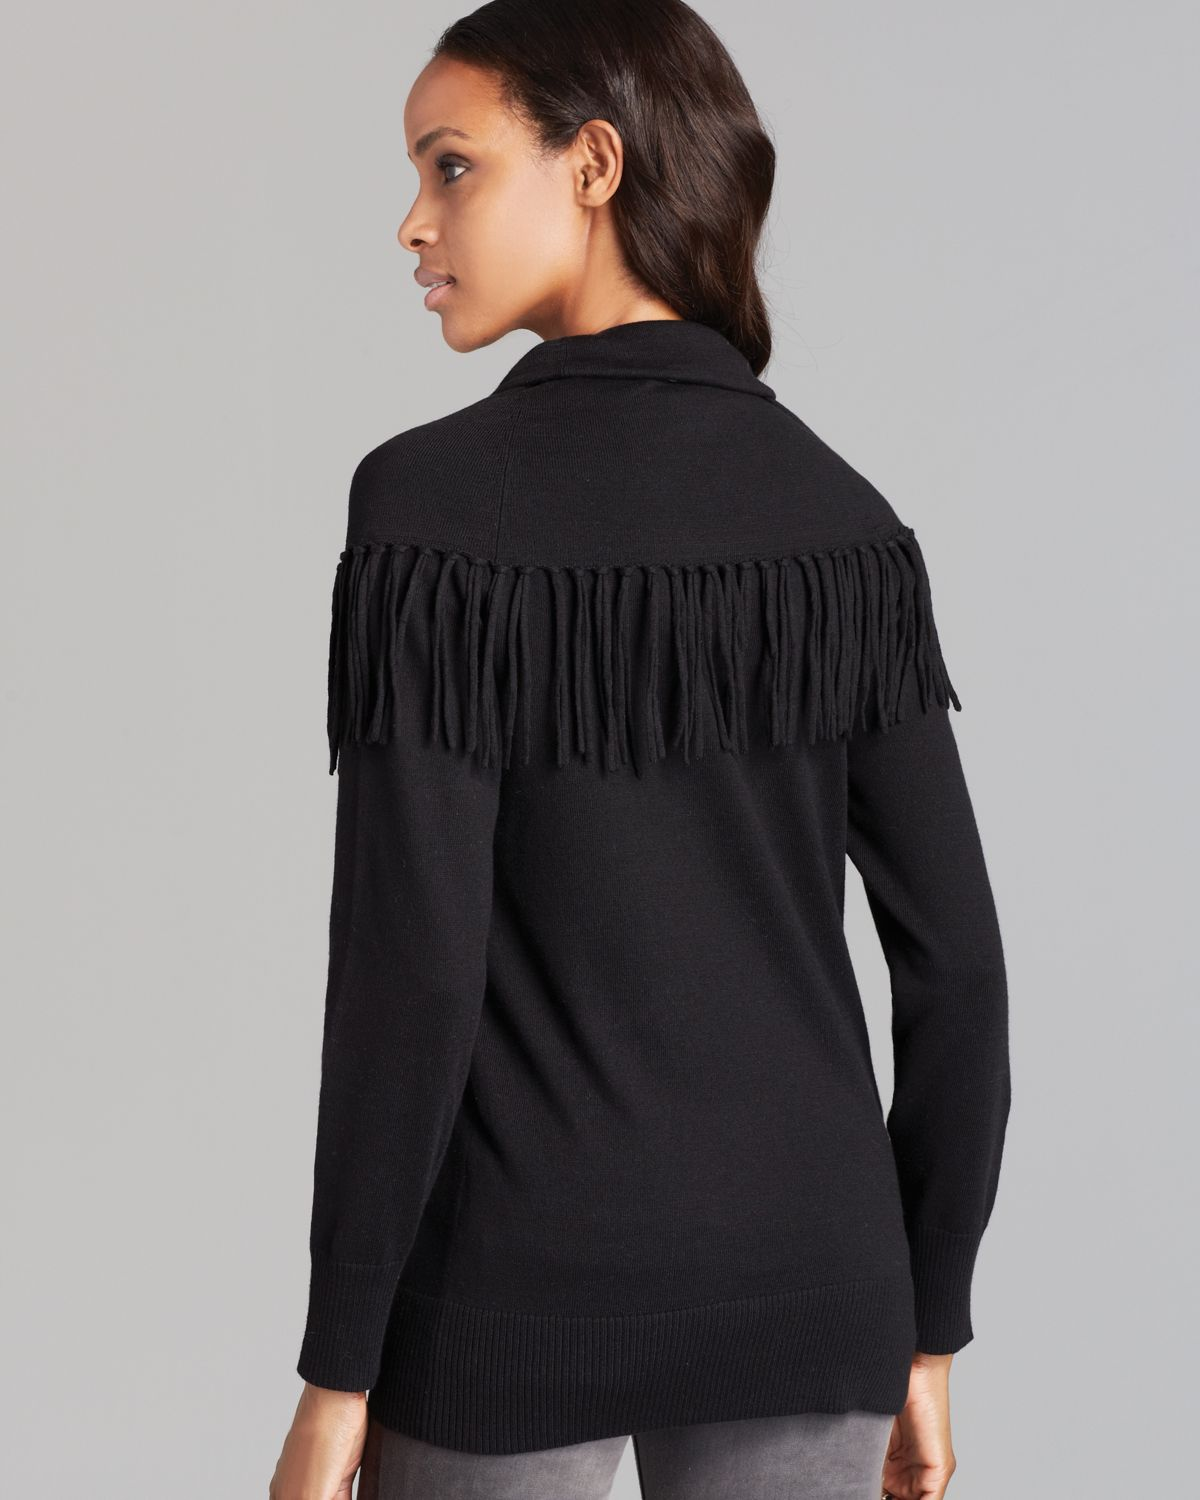 Michael michael kors Fringe Cowl Neck Sweater in Black | Lyst